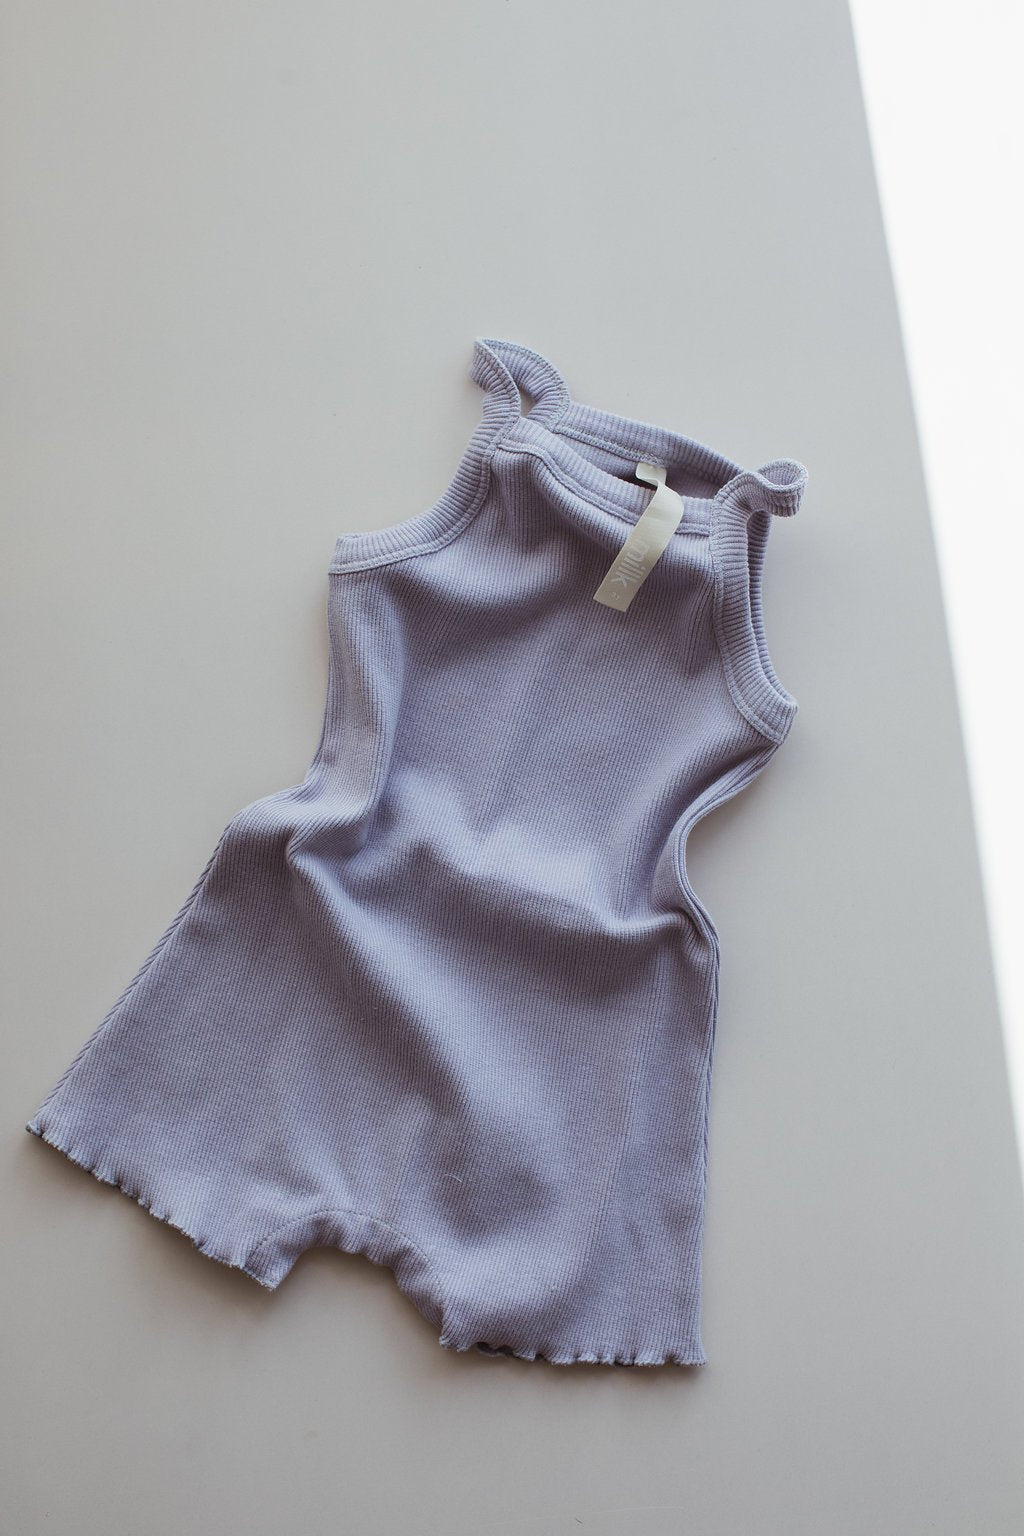 MILLK The Weekly Onesie — Lavender